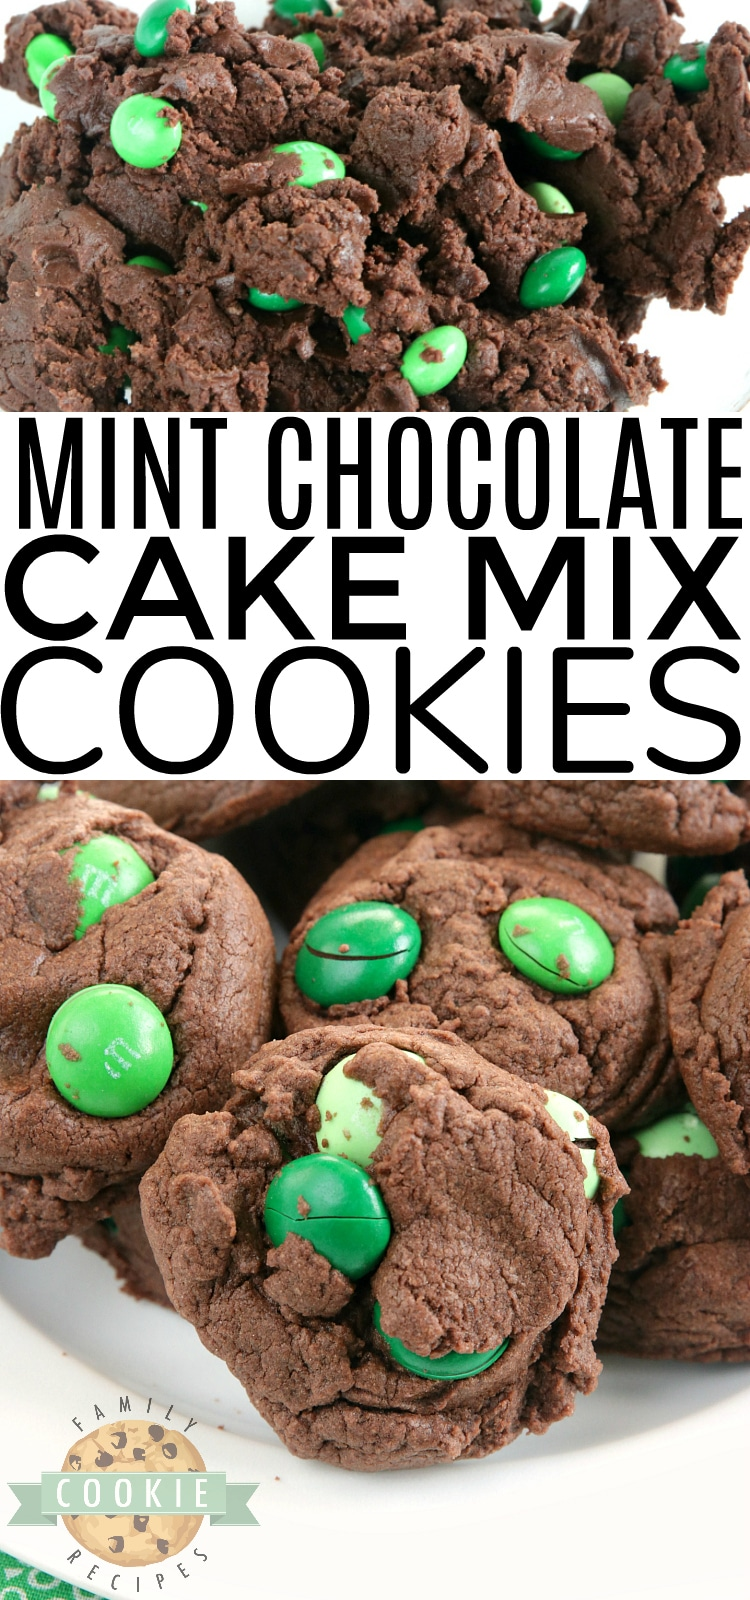 Mint Chocolate Cake Mix cookies are soft, chewy and made with only 4 ingredients! So easy to make these deliciously mint and chocolate flavored cake mix cookies. via @buttergirls